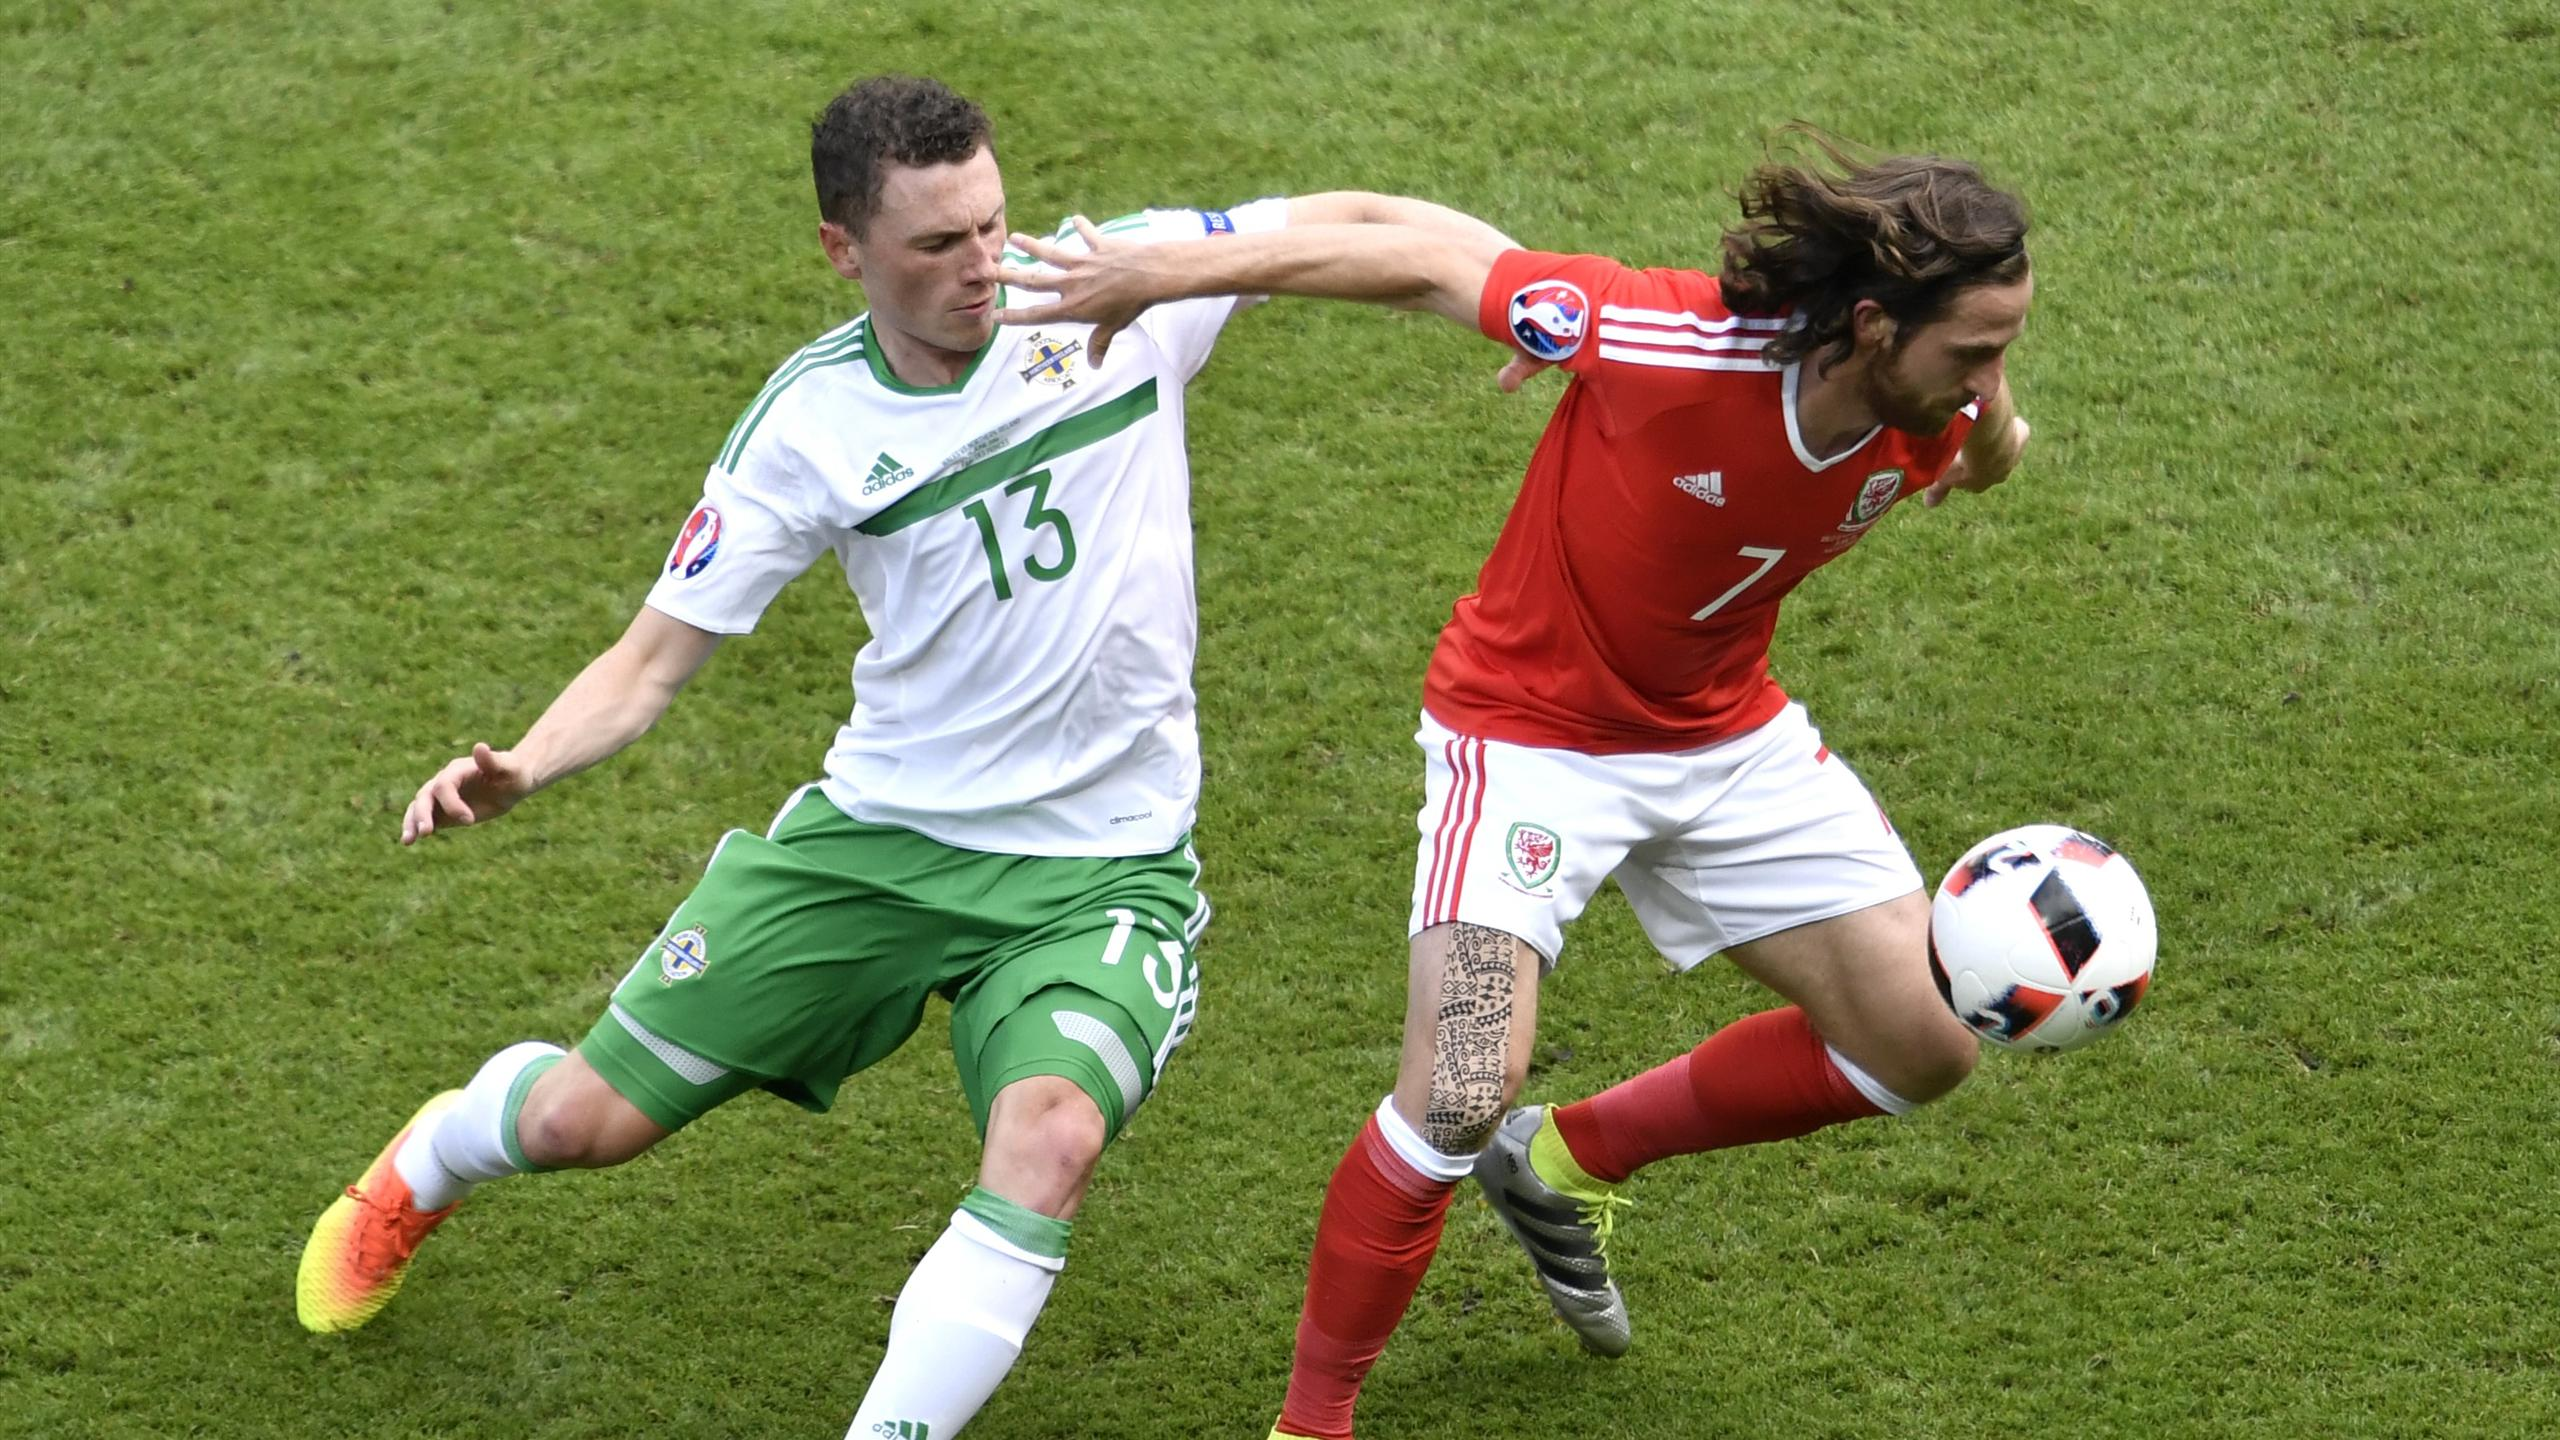 Northern Ireland's midfielder Corry Evans (L) challenges Wales' midfielder Joe Allen